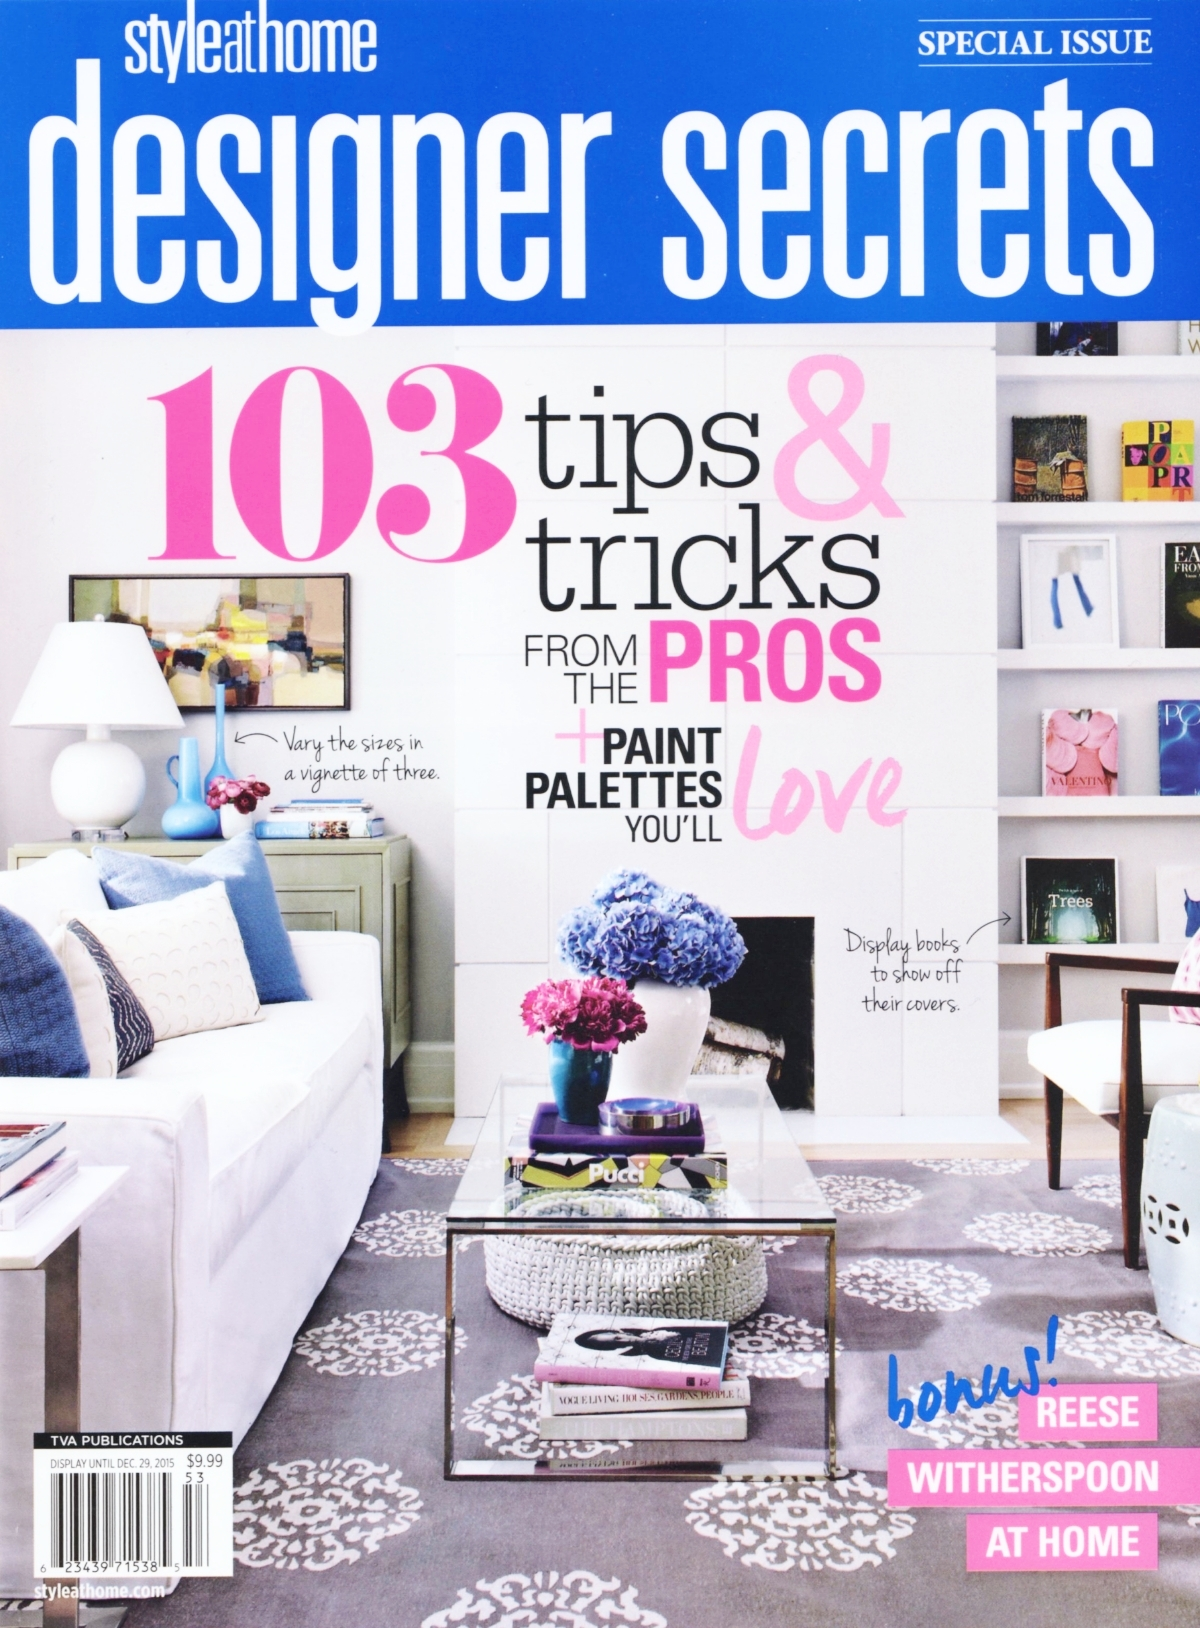 Chrissy & Co featured in designer secrets issue 2015. Design by Chrissy Cottrell owner of Curated Home Vancouver.